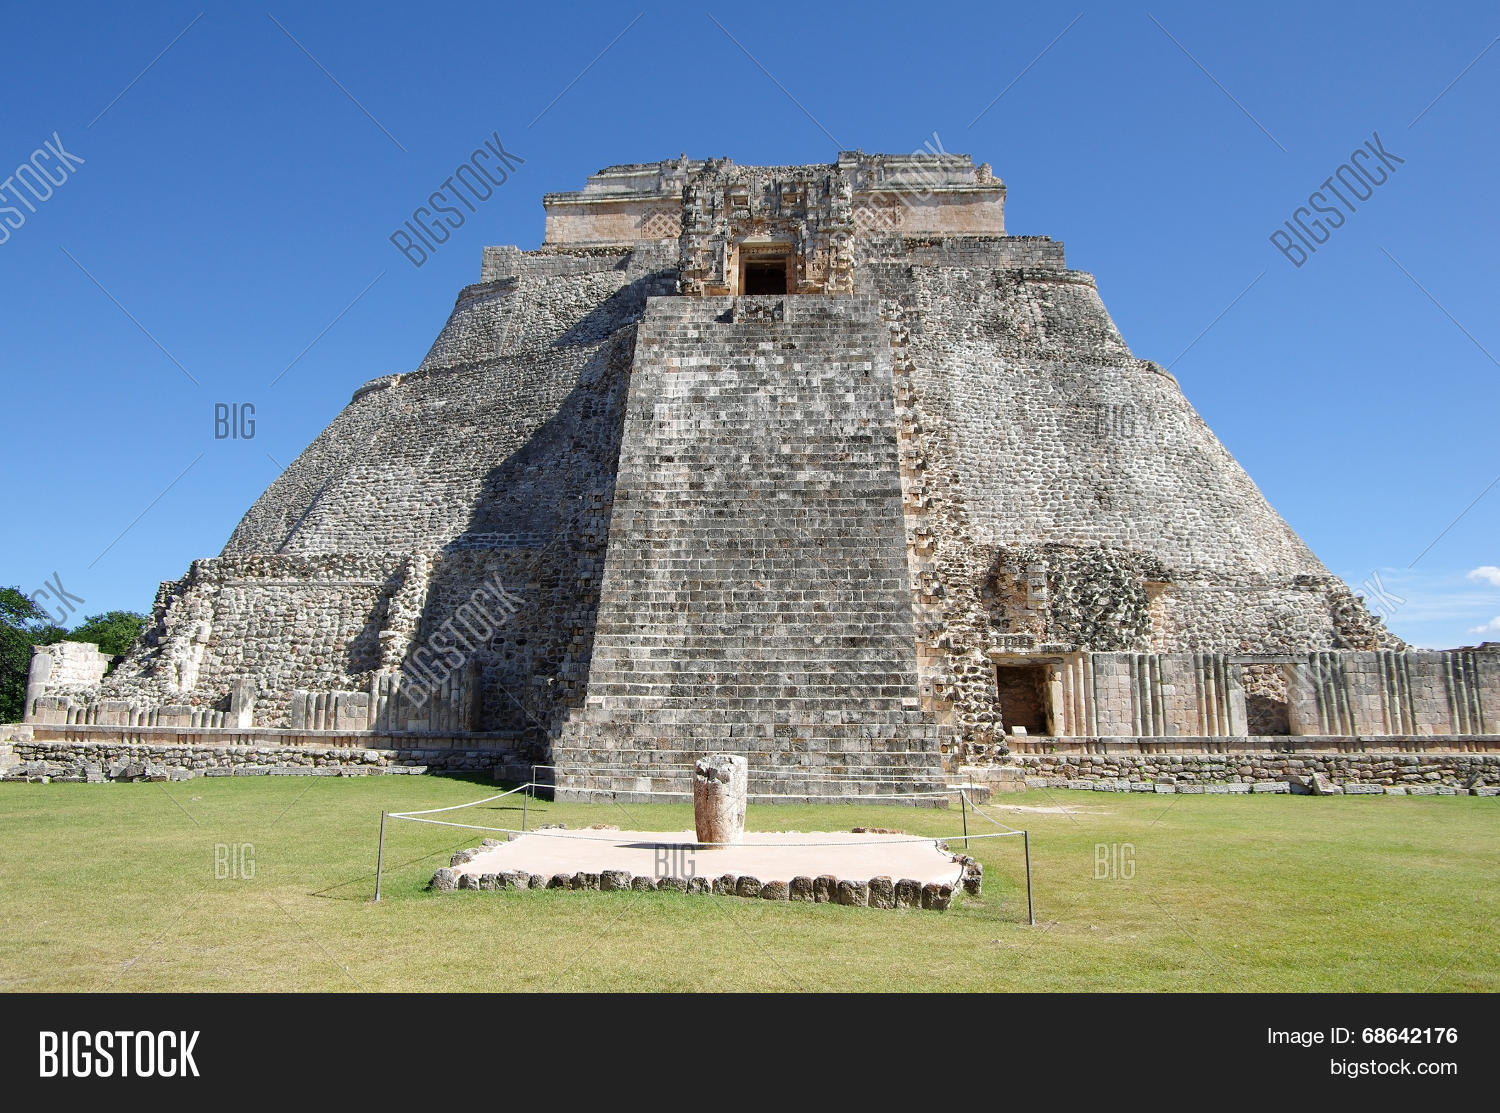 adivino,america,american,ancient,archeology,architecture,aztec,brick,building,campeche,civilization,complex,el,god,historic,historical,landmark,latin,magician,maya,mayan,mexican,mexico,monument,moon,museum,pyramid,religion,religious,ritual,ruin,stair,stone,sun,temple,tourism,travel,traveling,uxmal,yucatan